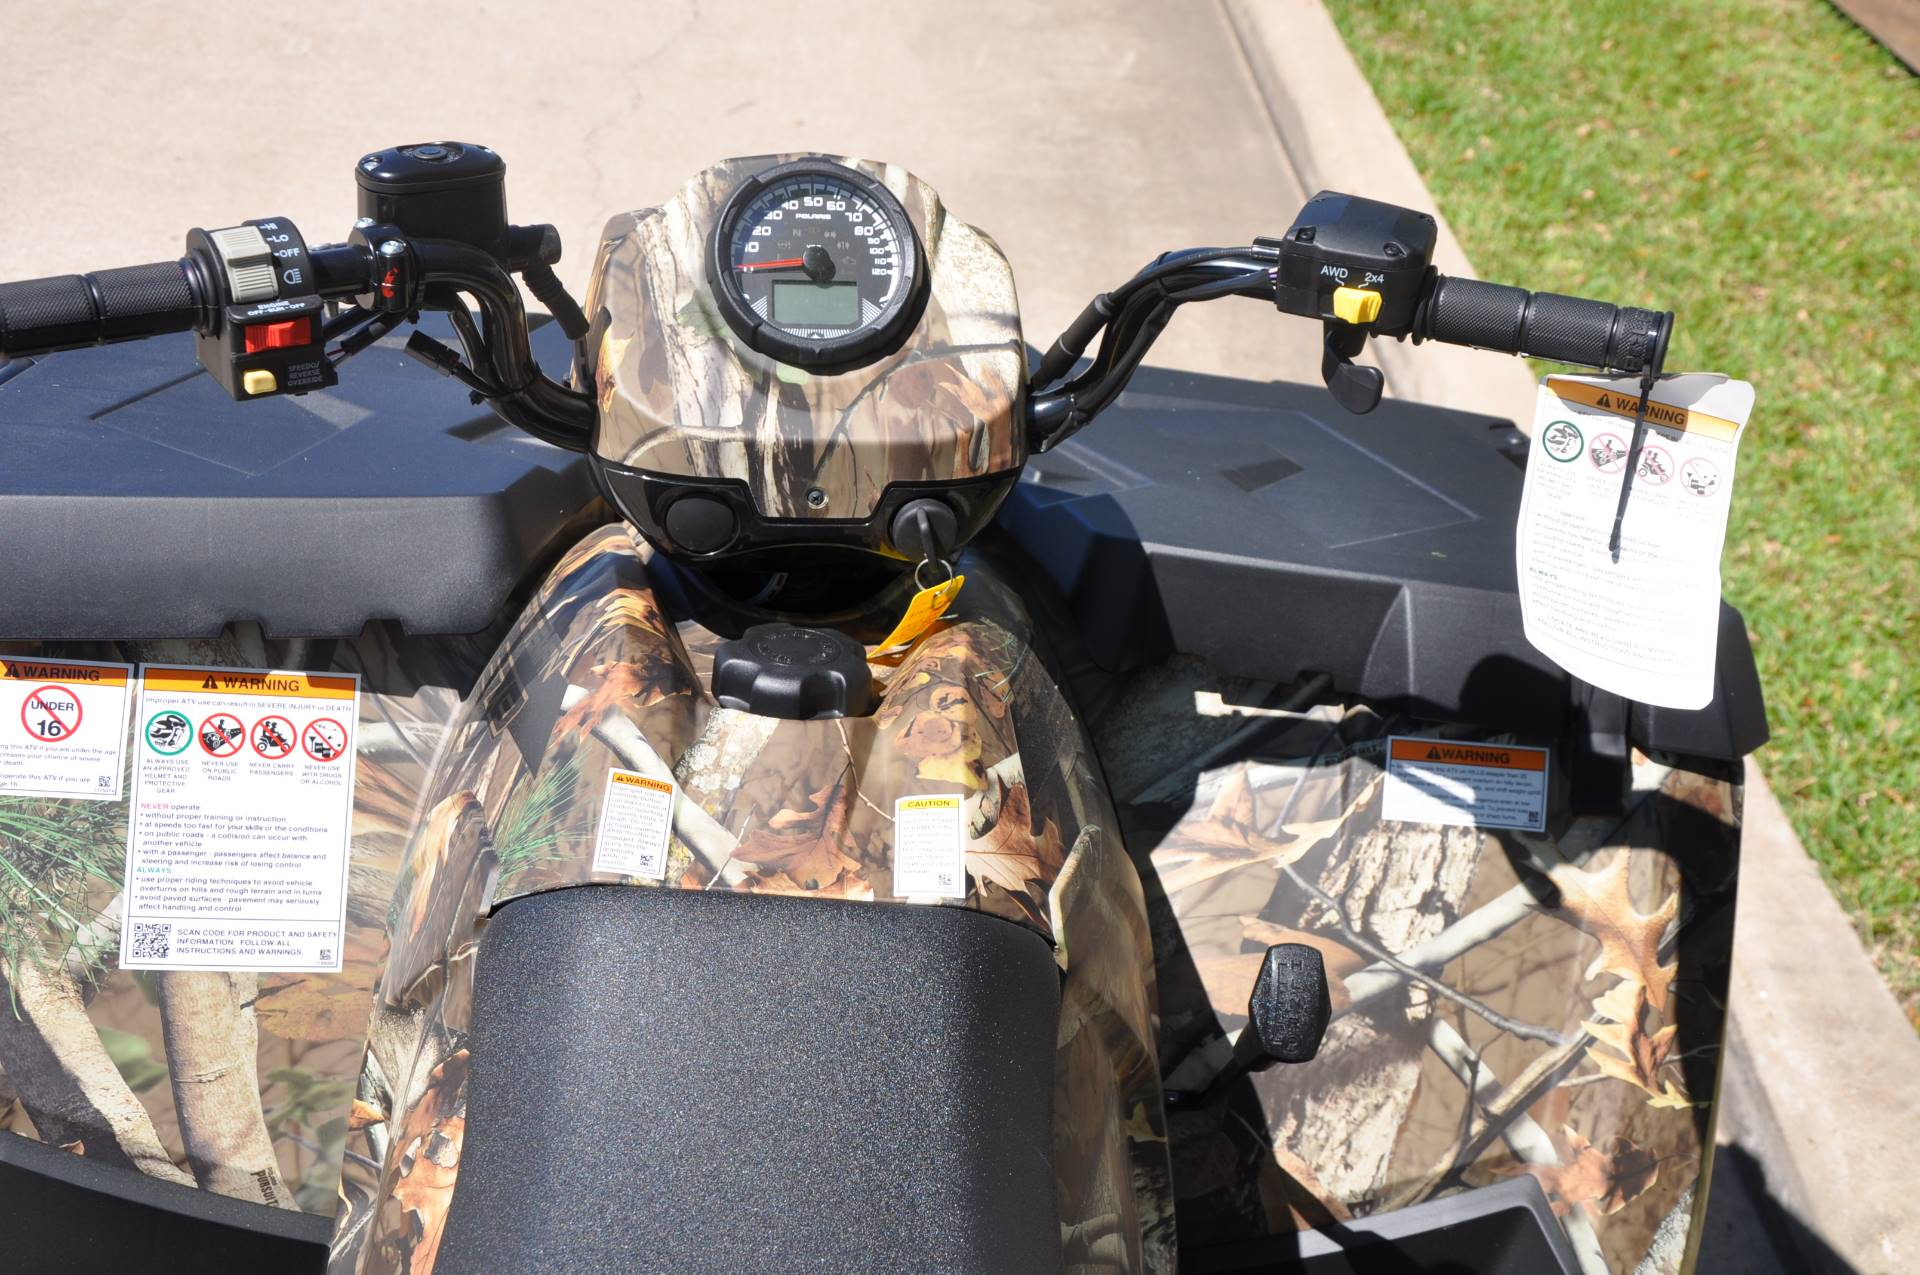 2019 Polaris Sportsman 570 Camo 7